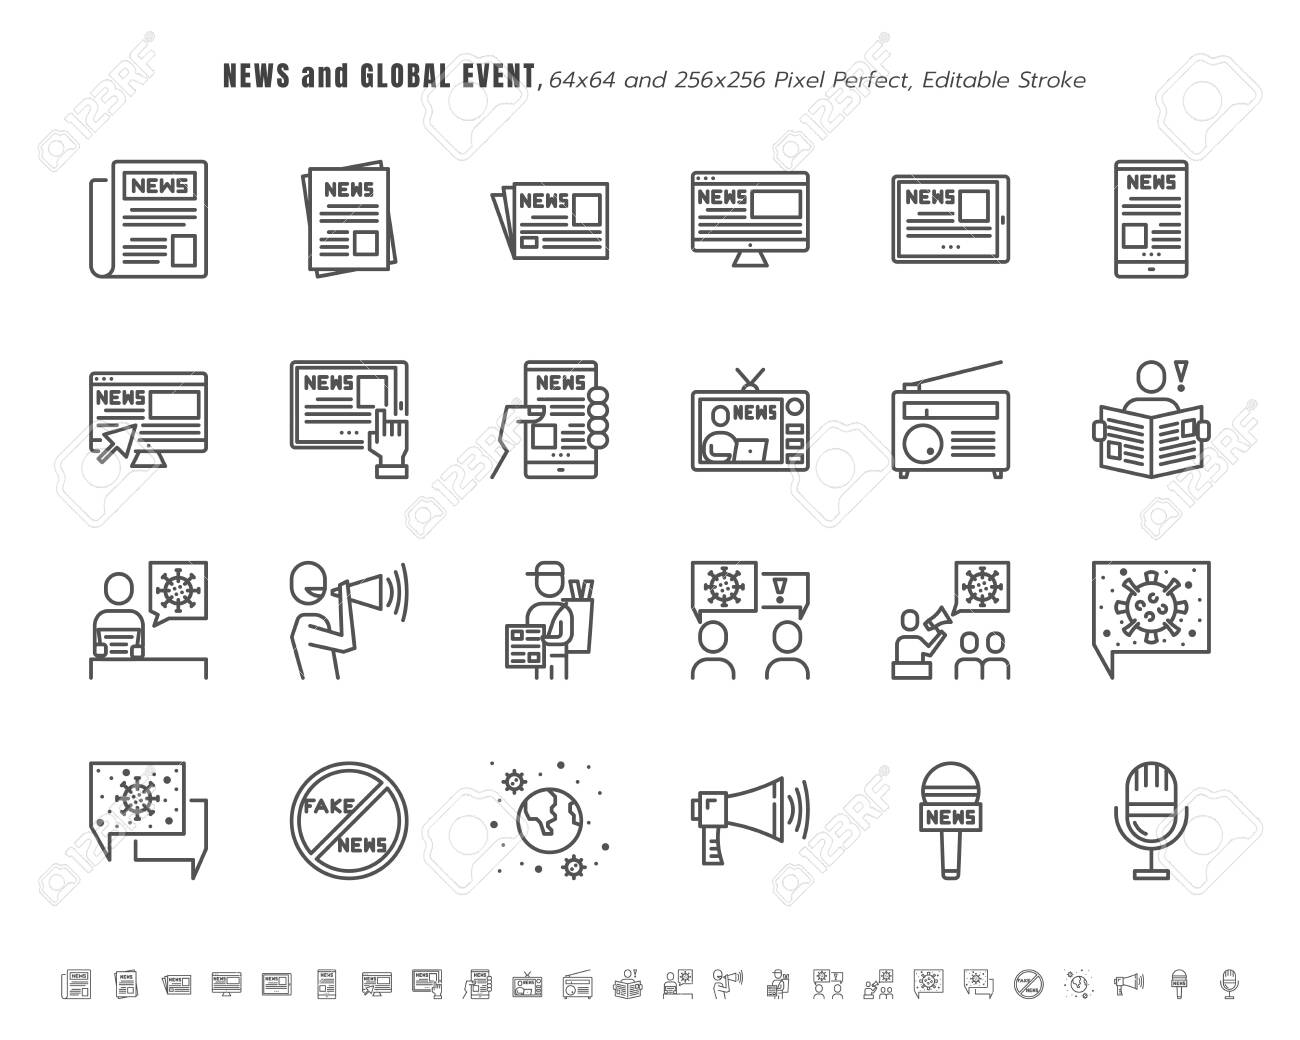 Simple Set of News and Global Event of Coronavirus, Covid-19 Related in Different Platform. Such as Tablet, Phone, Speech Bubble. Line Outline Icons Vector. 64x64 Pixel Perfect. Editable Stroke. - 147500195